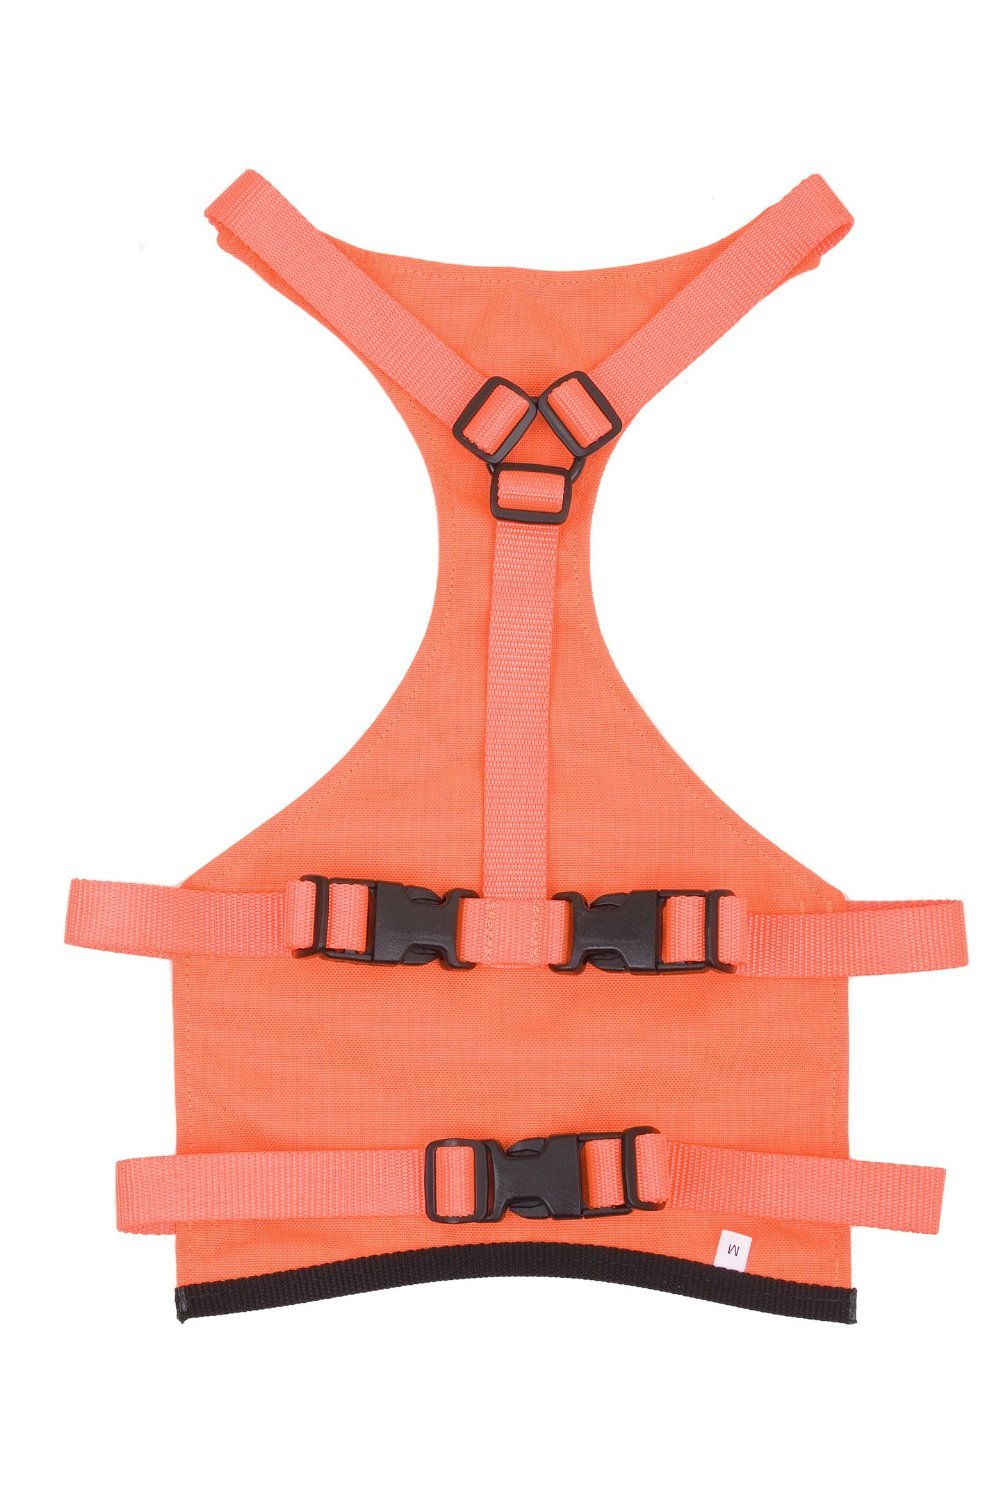 Mendota Products 65193 Skid Plate Dog Chest Protector, Orange, X-Large